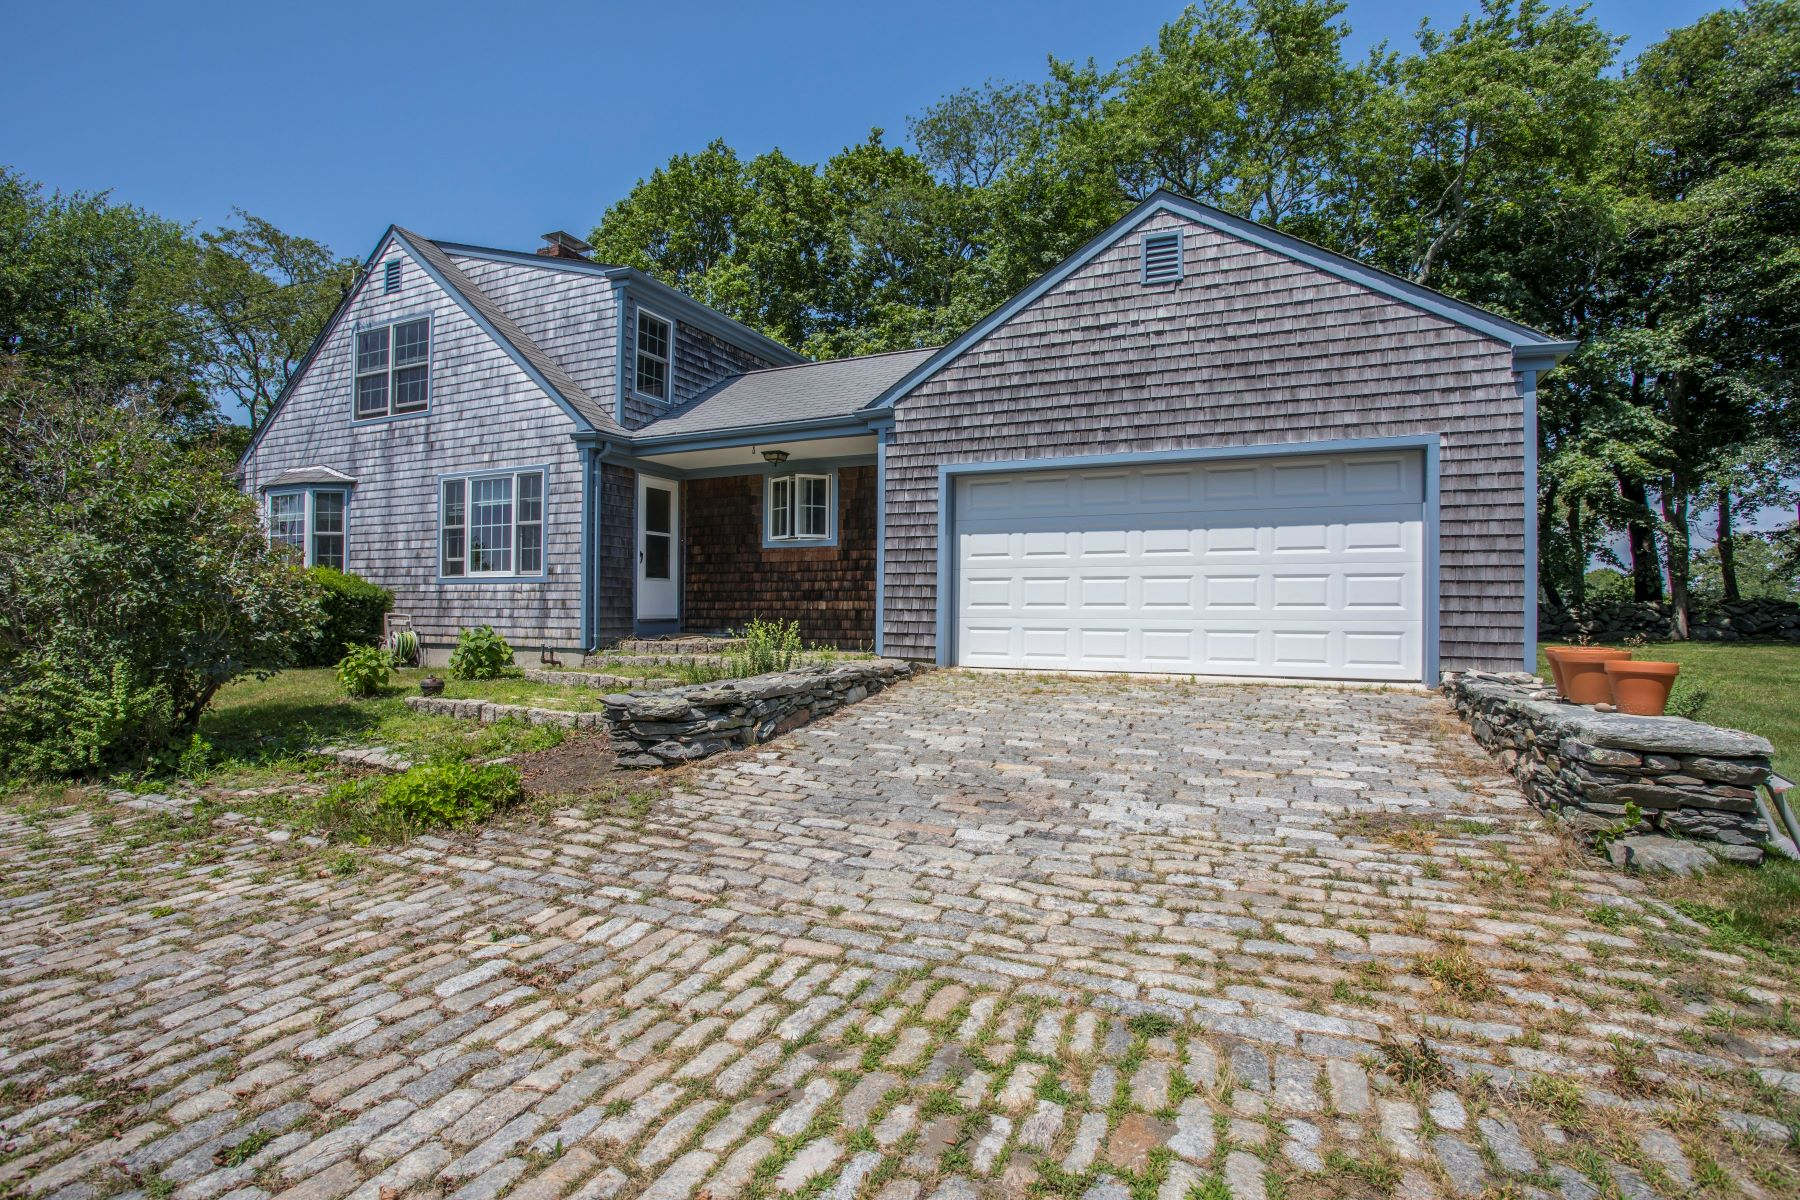 Additional photo for property listing at South Tiverton Mid-Century Cape 4220 Main Road Tiverton, Rhode Island 02878 United States